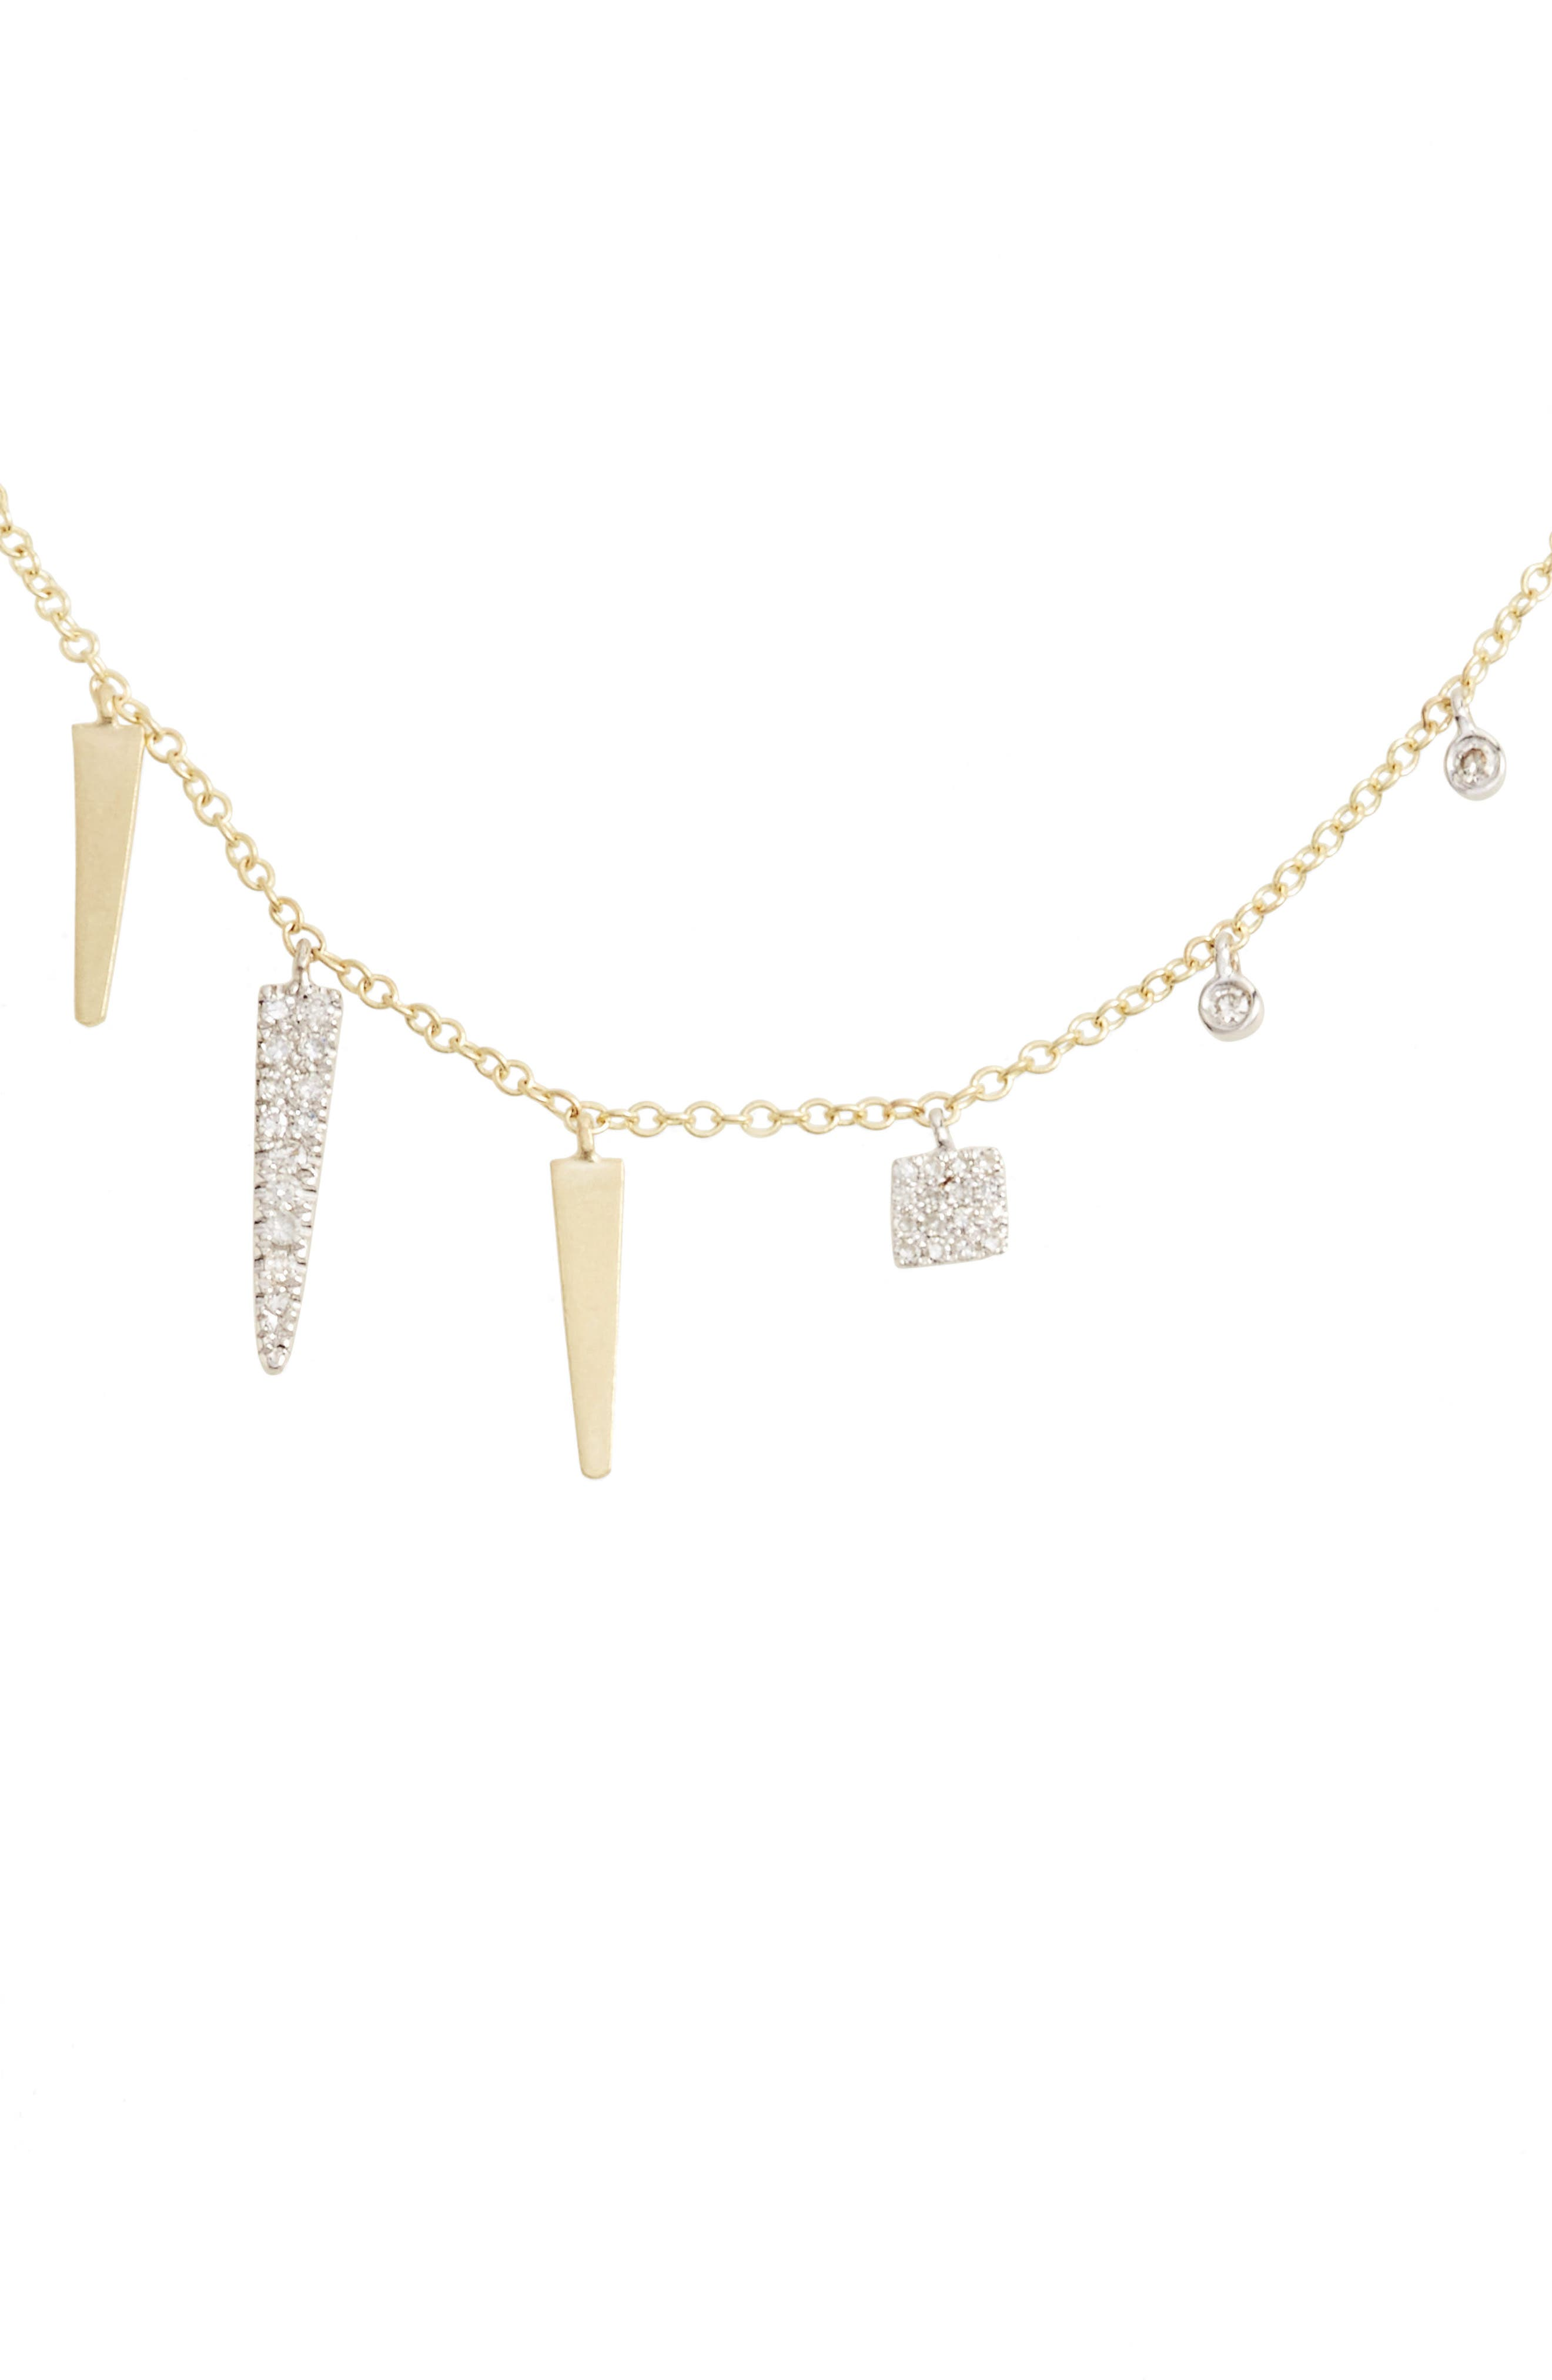 Diamond Spike Dangle Charm Necklace,                         Main,                         color, Yellow Gold/ White Gold